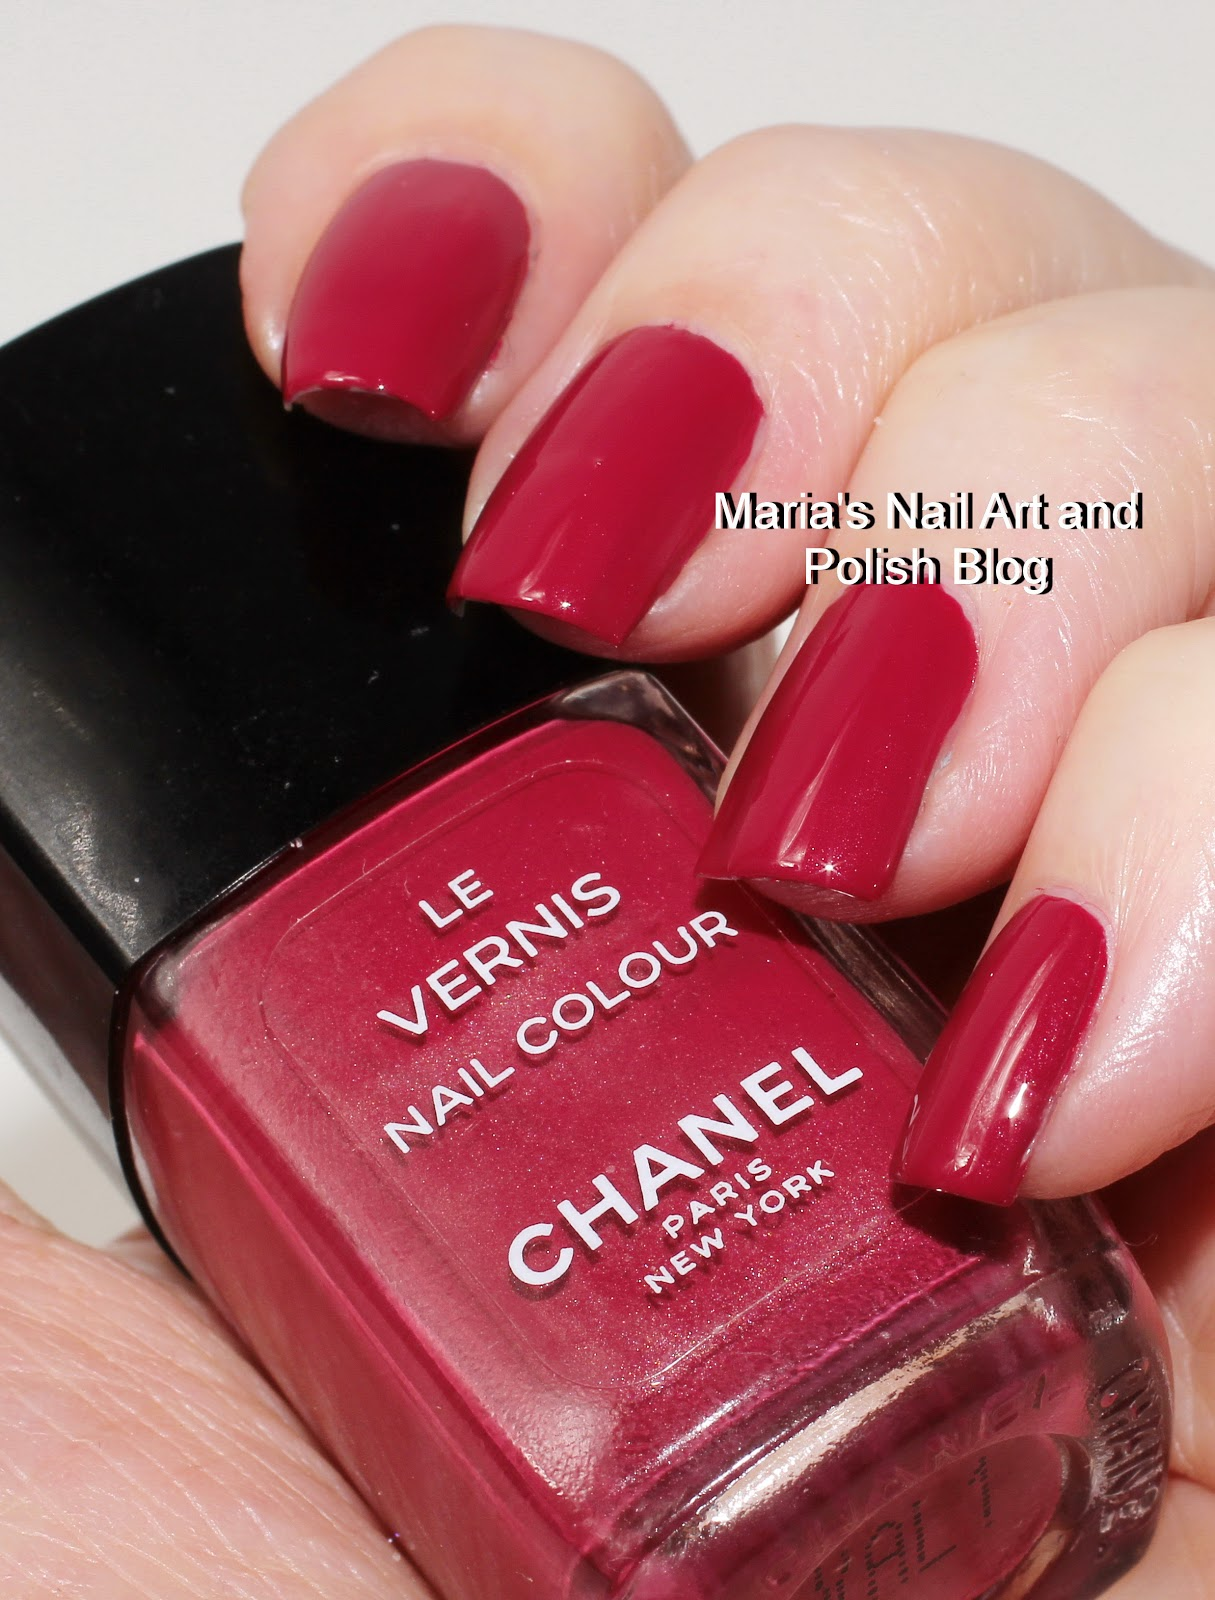 Marias nail art and polish blog chanel rouge envoutant berry 55 chanel rouge envoutant berry 55 swatches prinsesfo Images